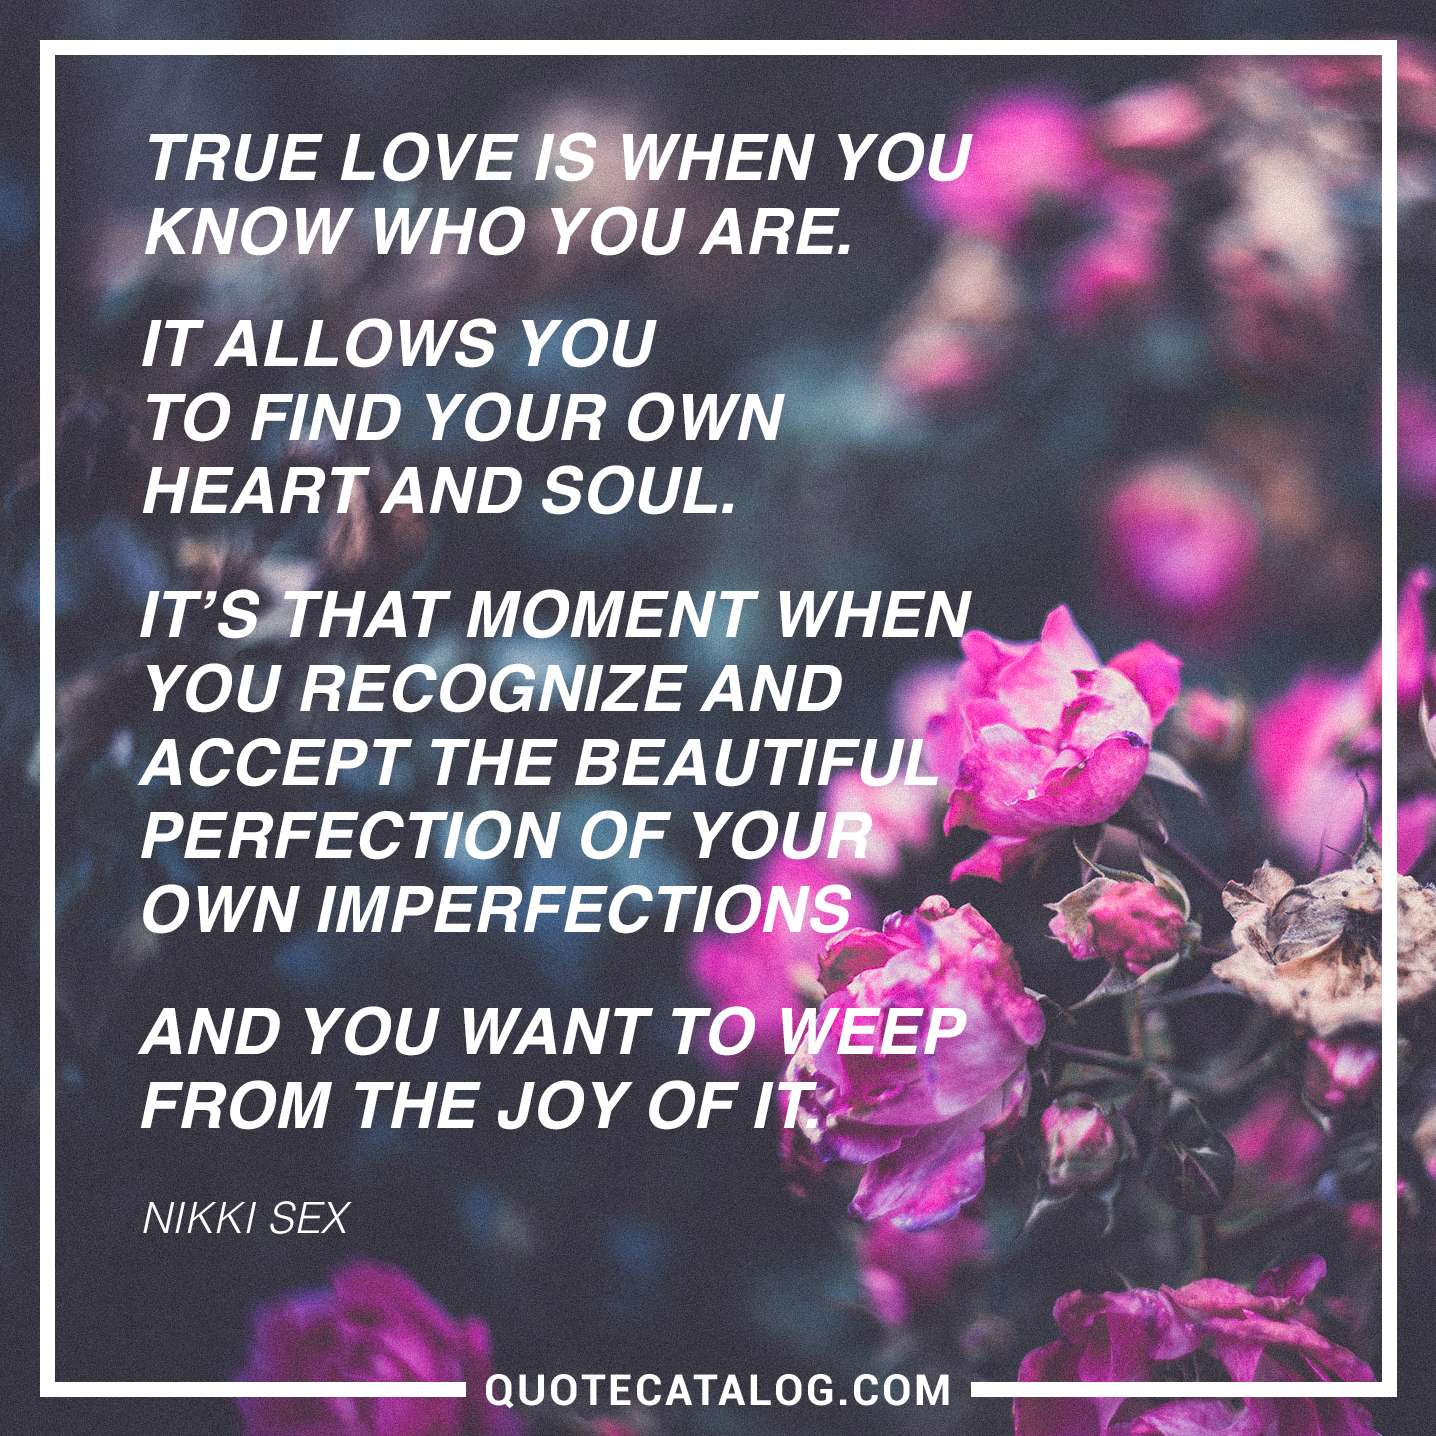 True Love Is When You Know Who You Are. It Allows You To Find Your